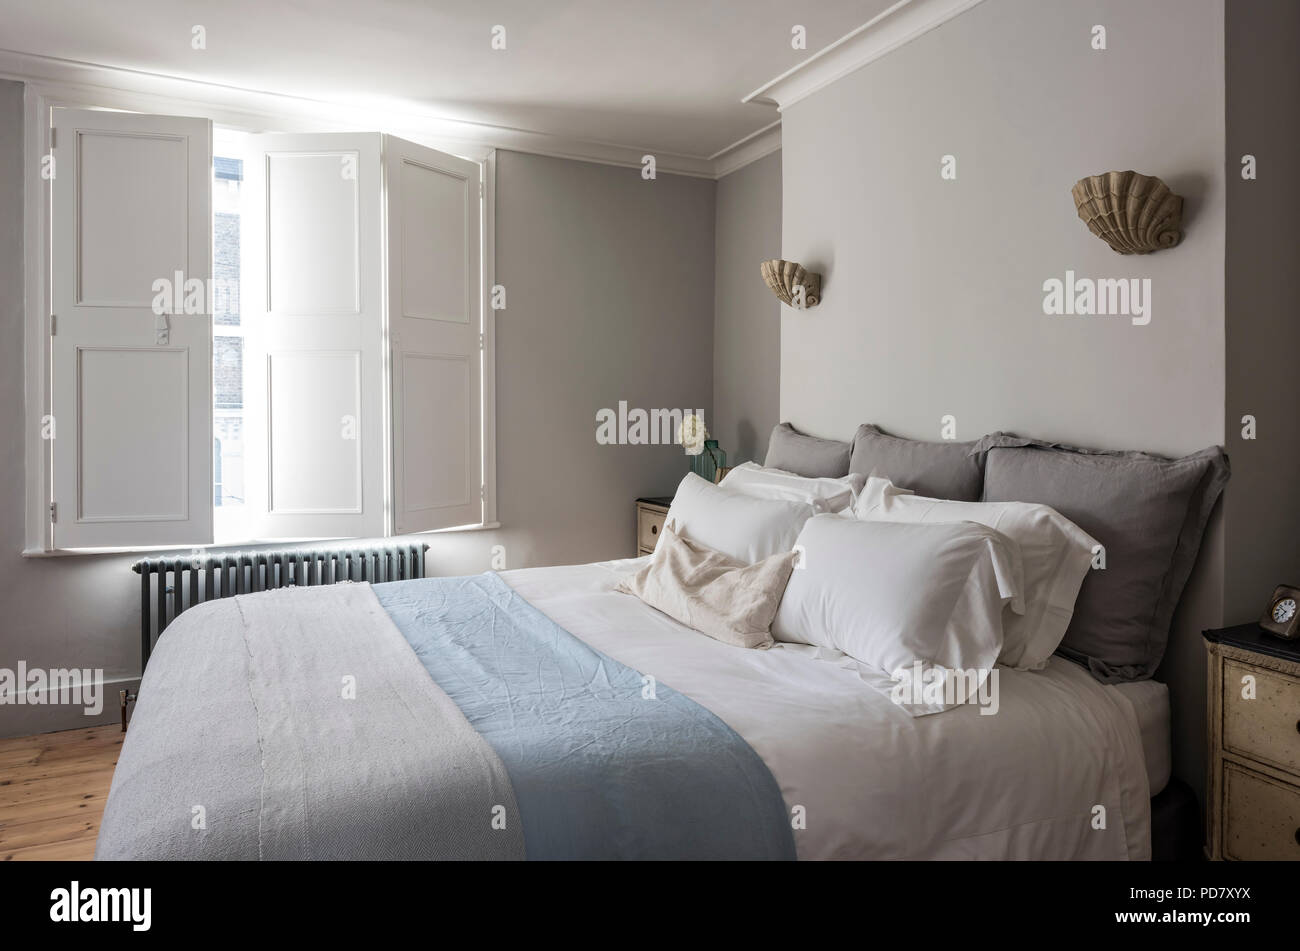 Elegant Bedroom With Window Shutters And Scallop Wall Sconce Lights From  Cox London Lighting.